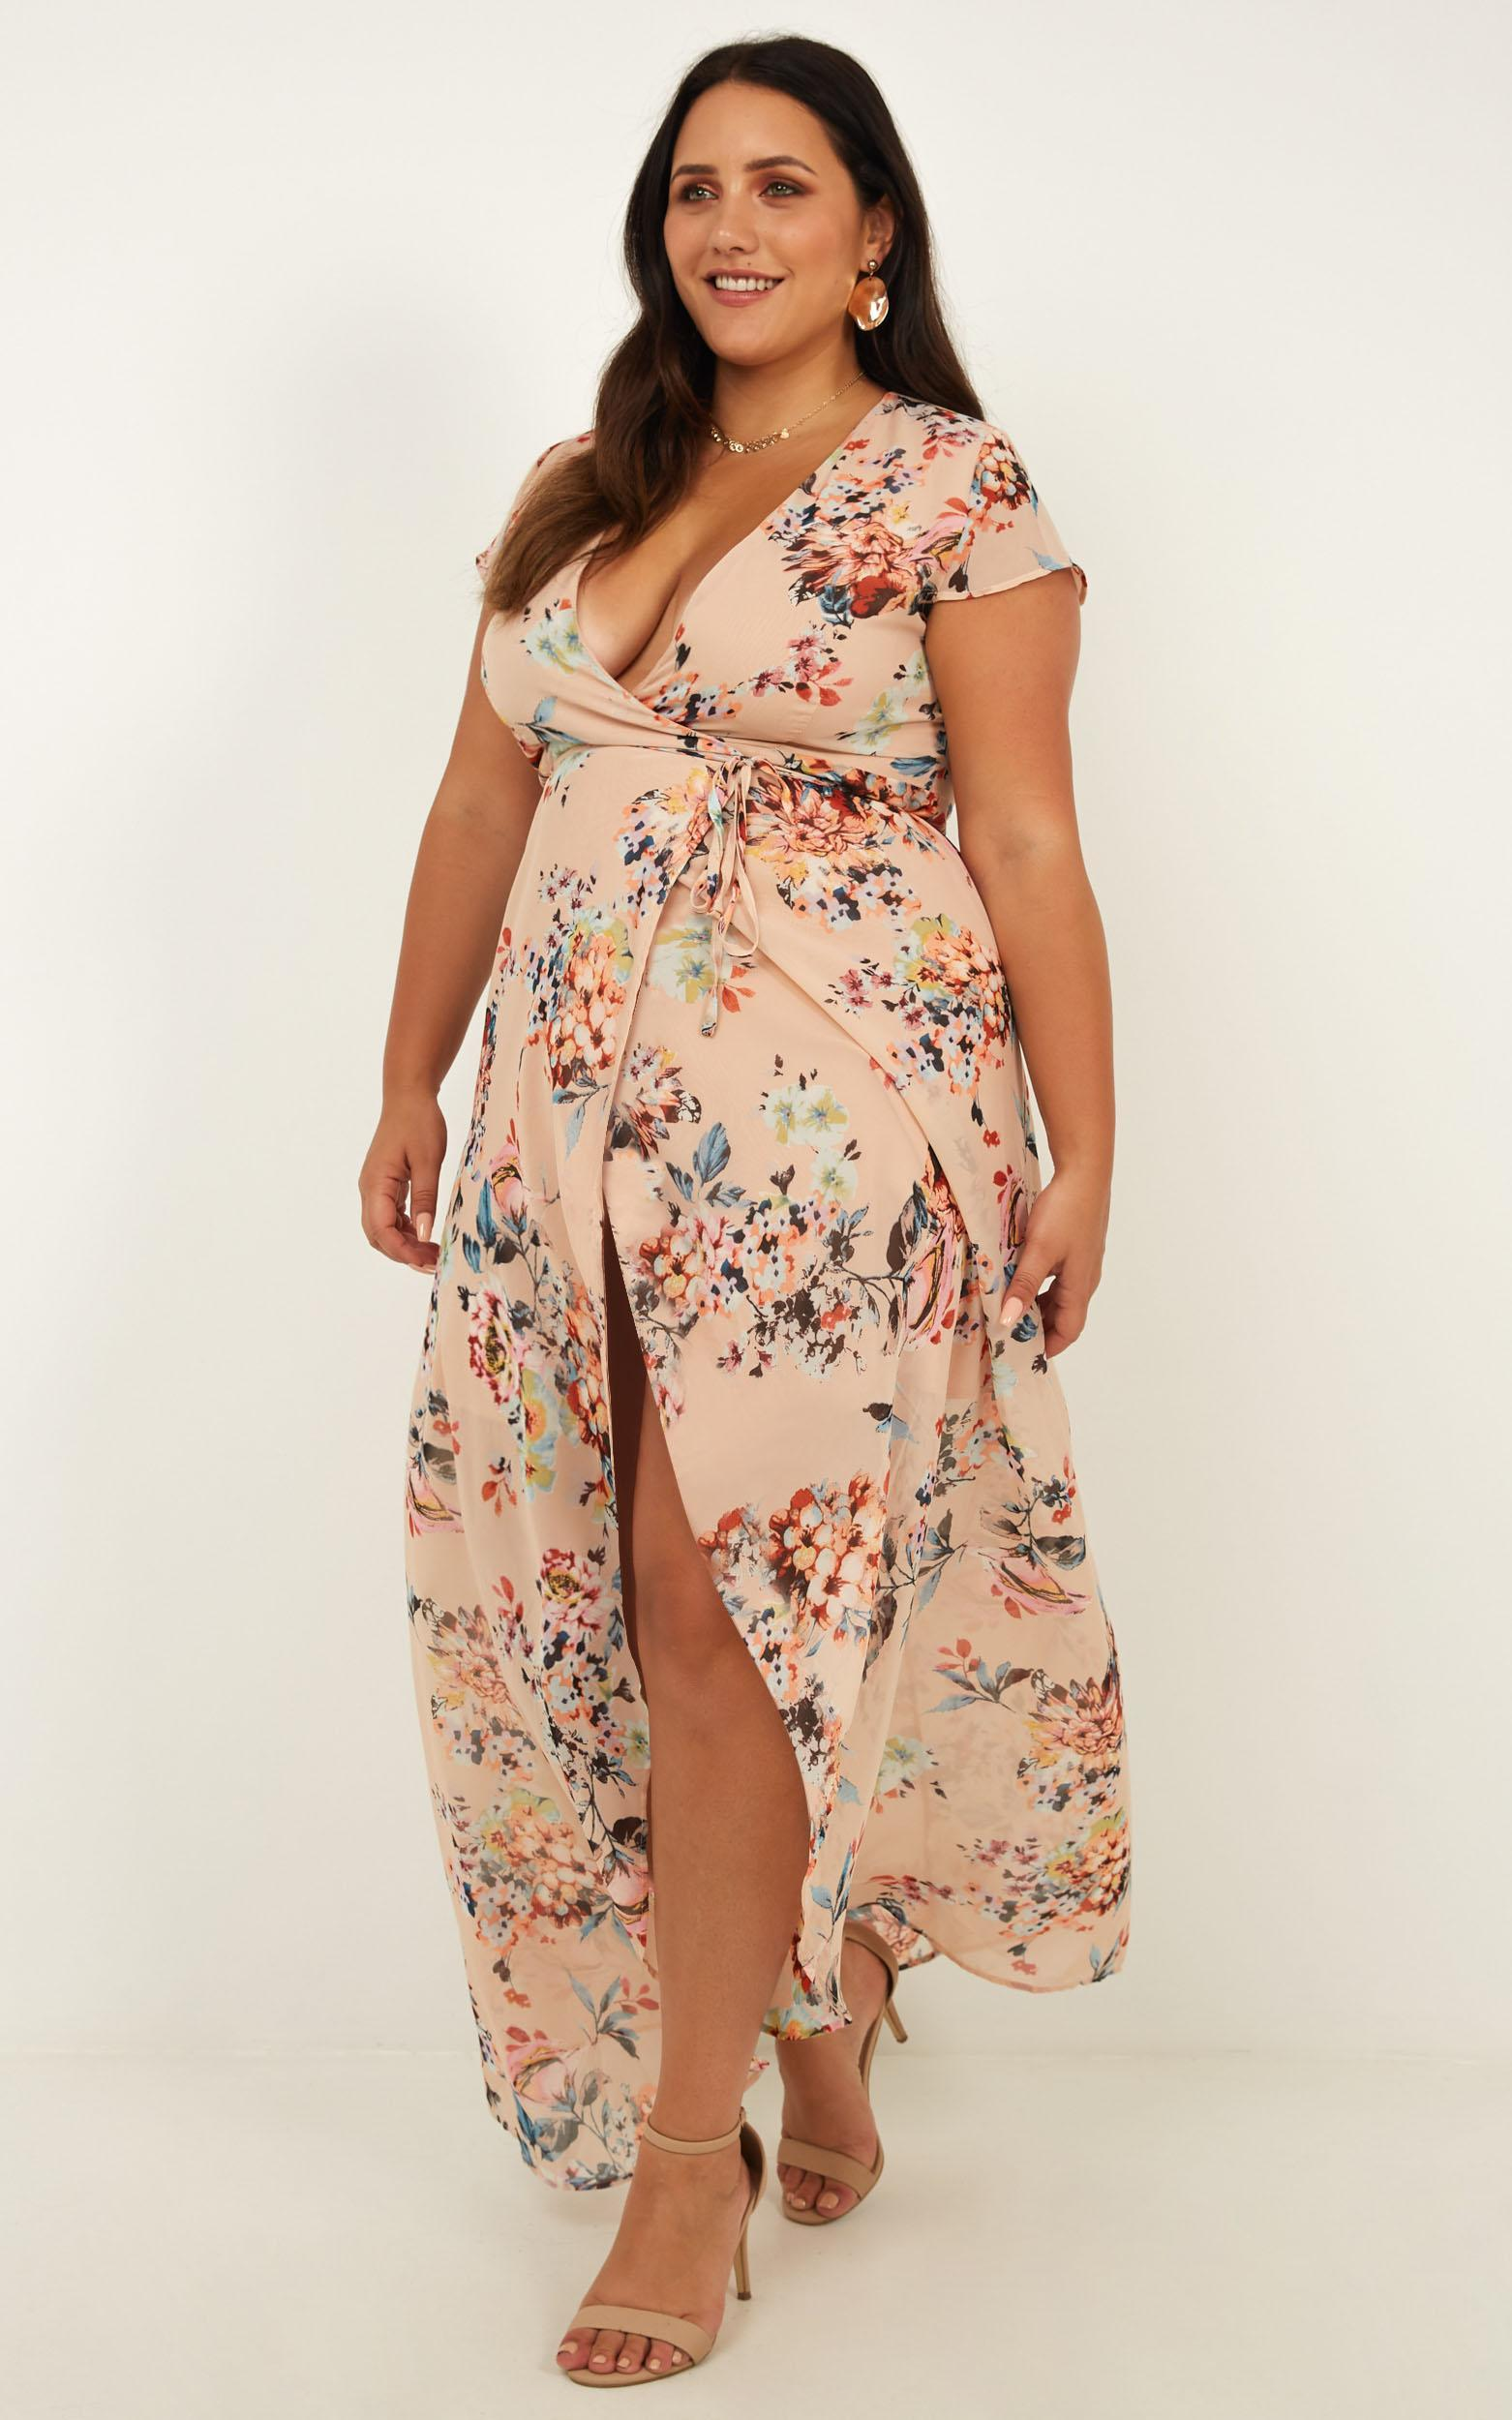 Wrap And Cross Maxi Dress in blush floral - 6 (XS), Blush, hi-res image number null